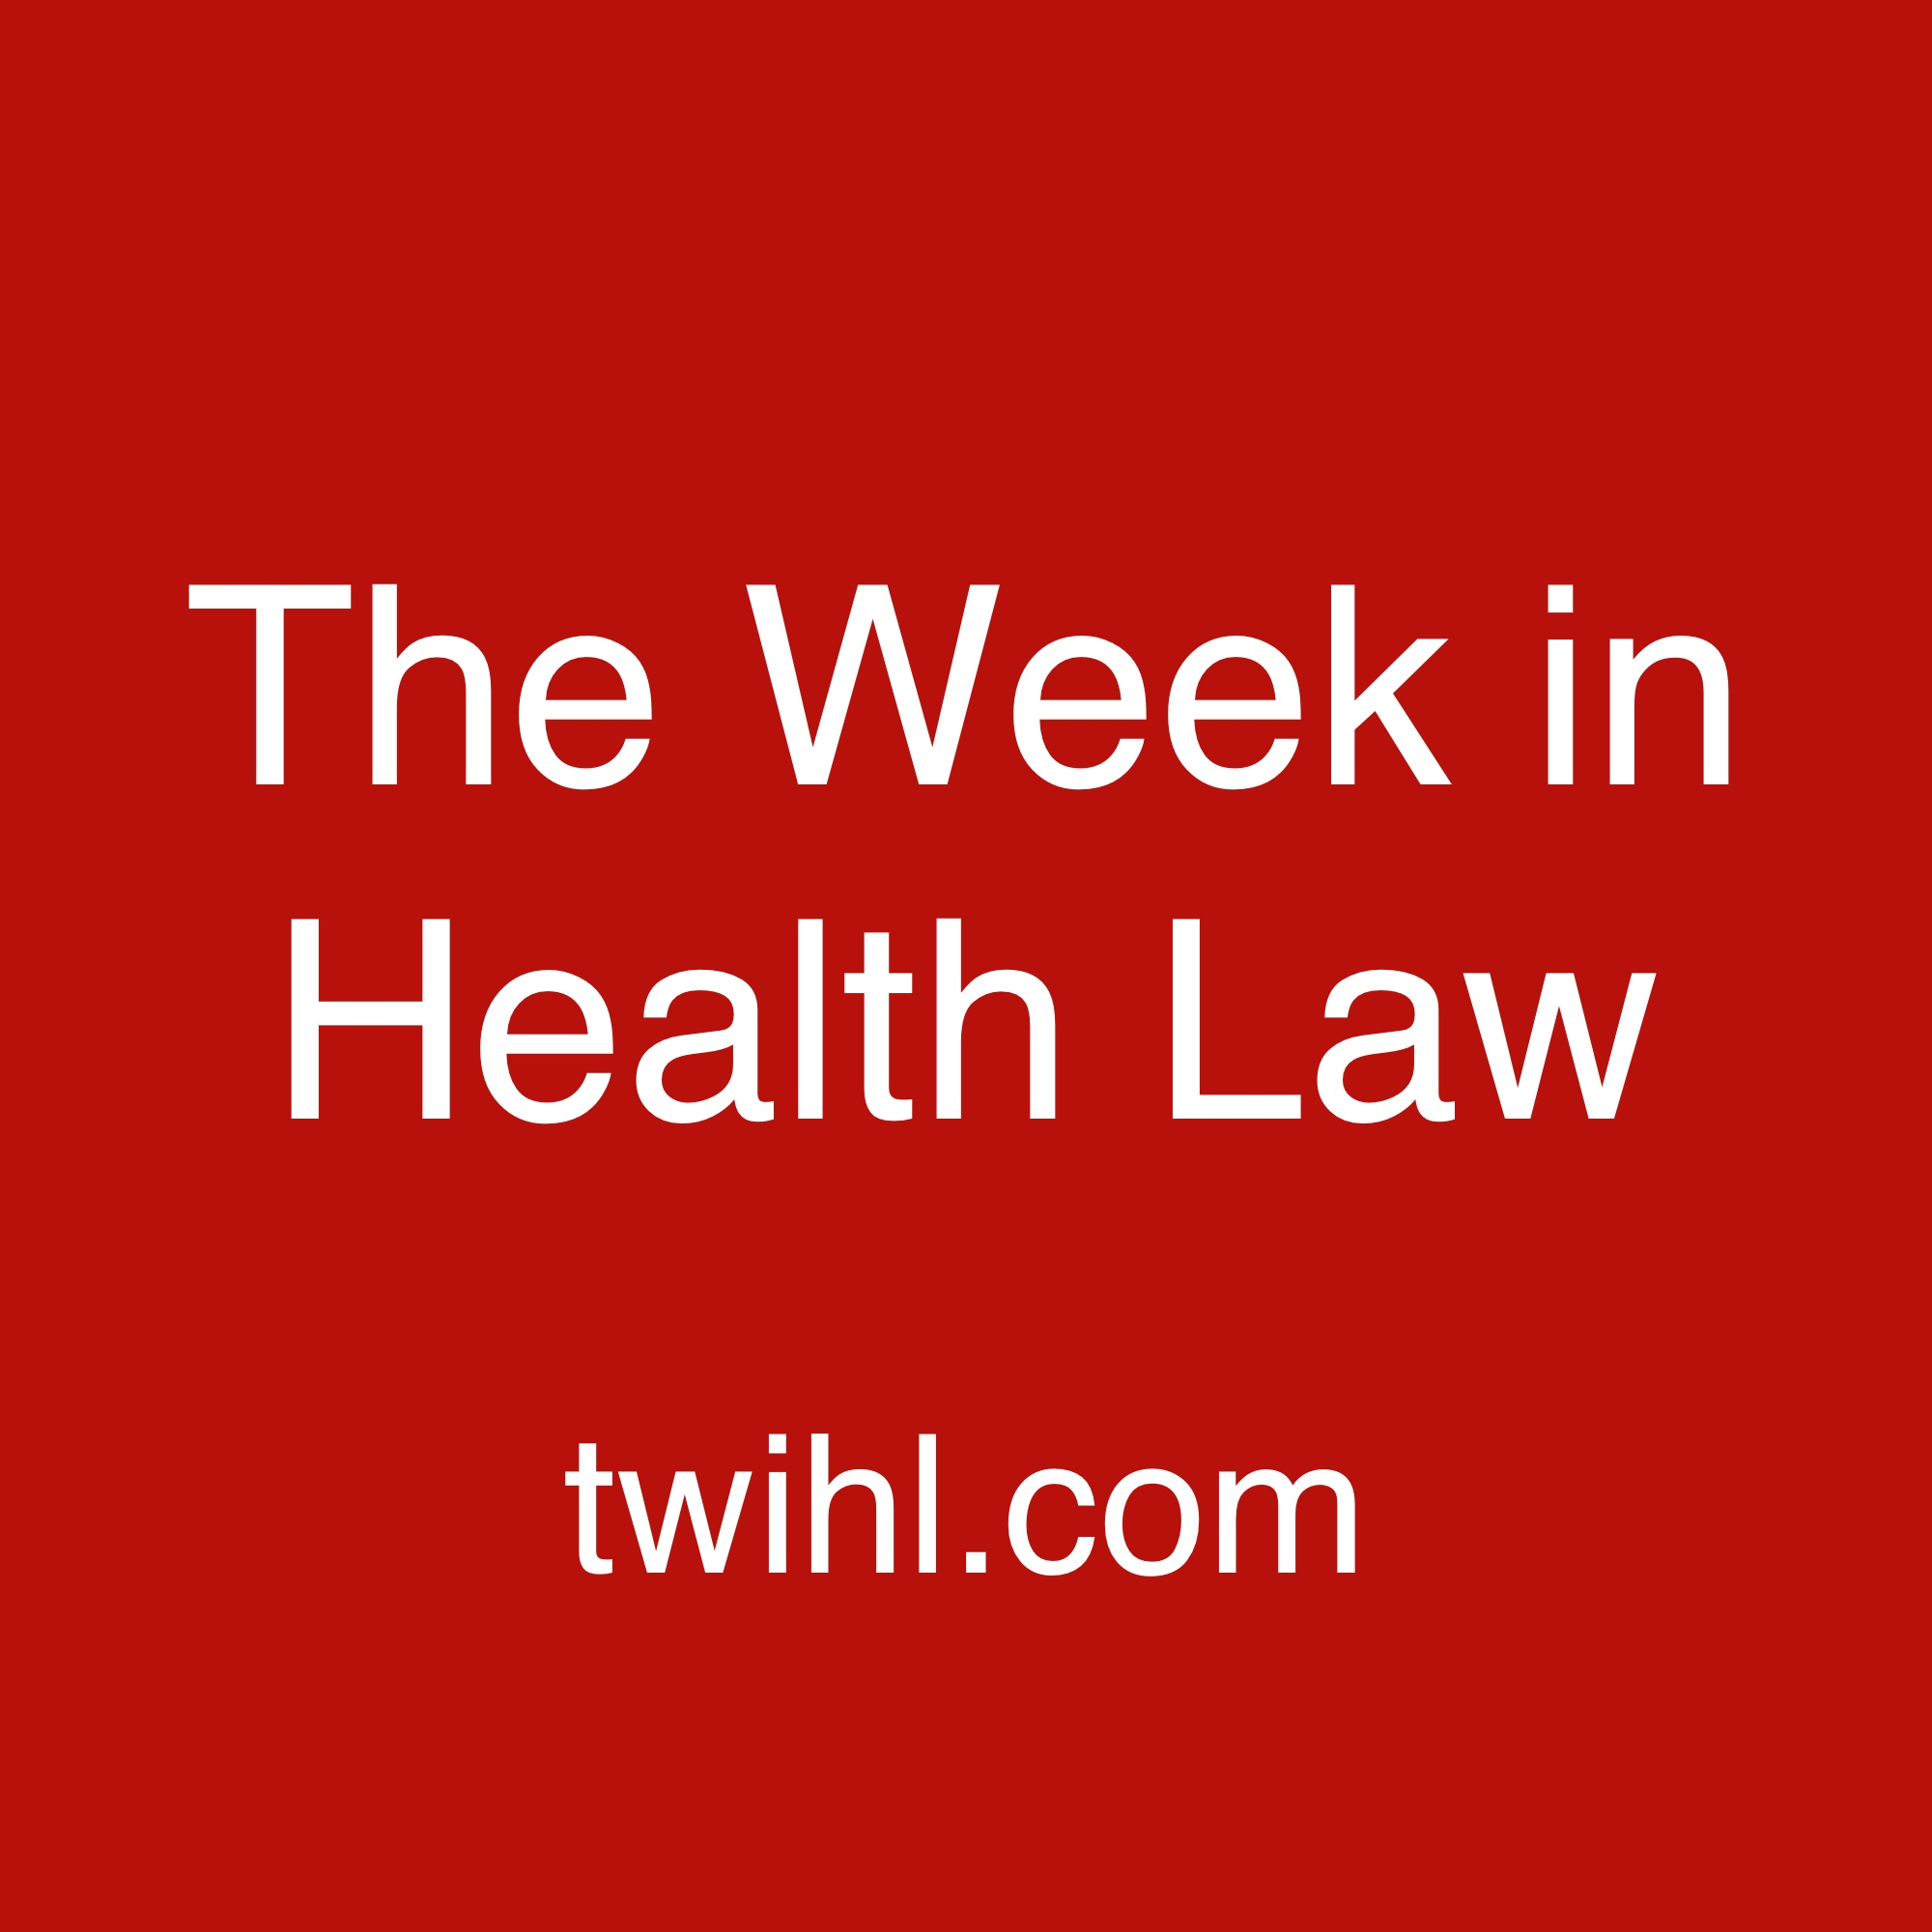 The Week in Health Law